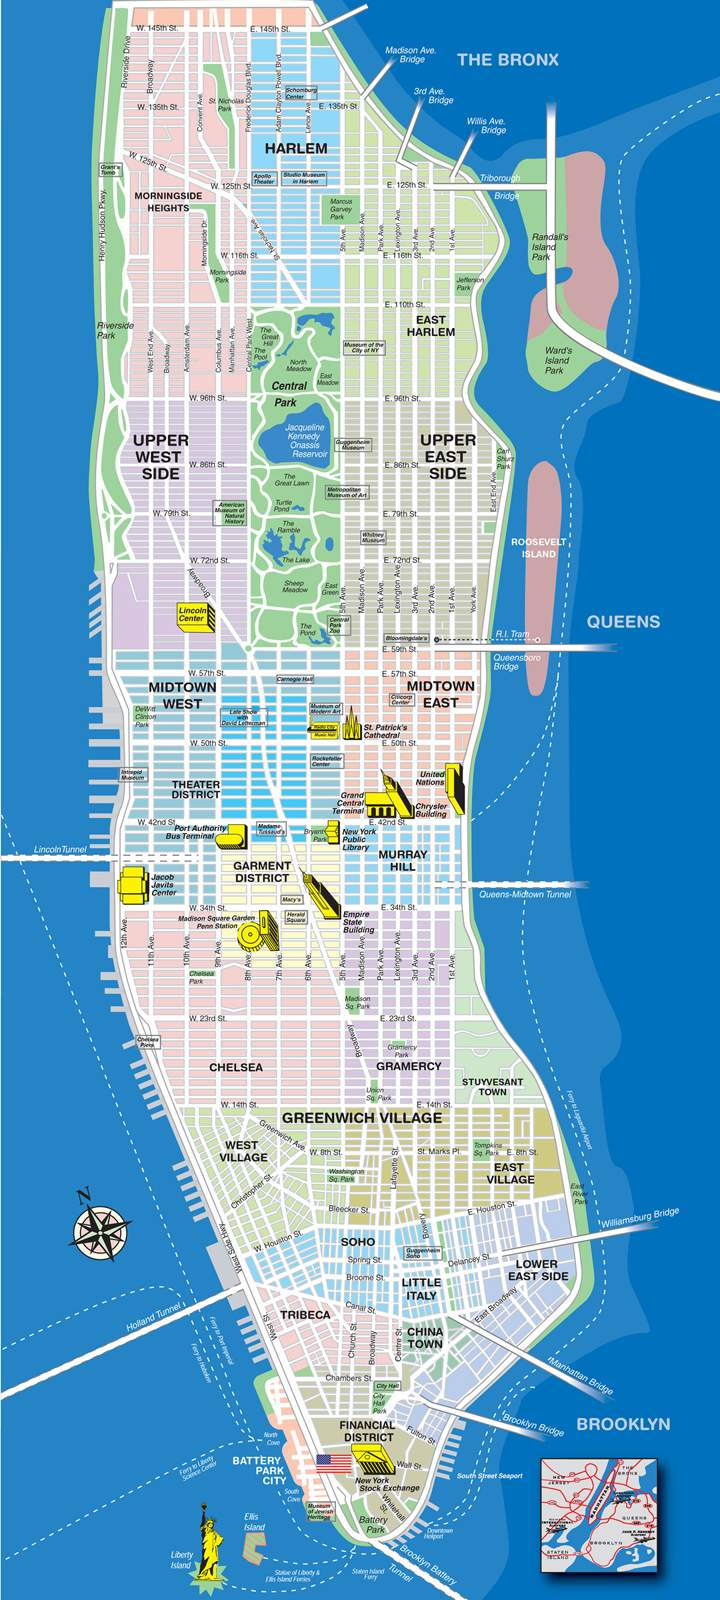 photograph about Manhattan Printable Map titled Enormous Manhattan Maps for Cost-free Down load and Print Substantial